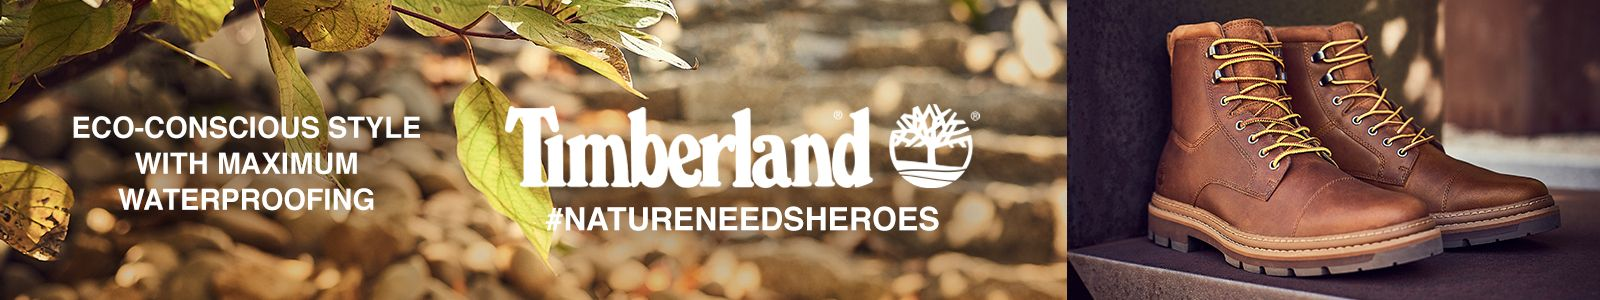 Eco-Conscious Style With Maximum Waterproofing, Timberland